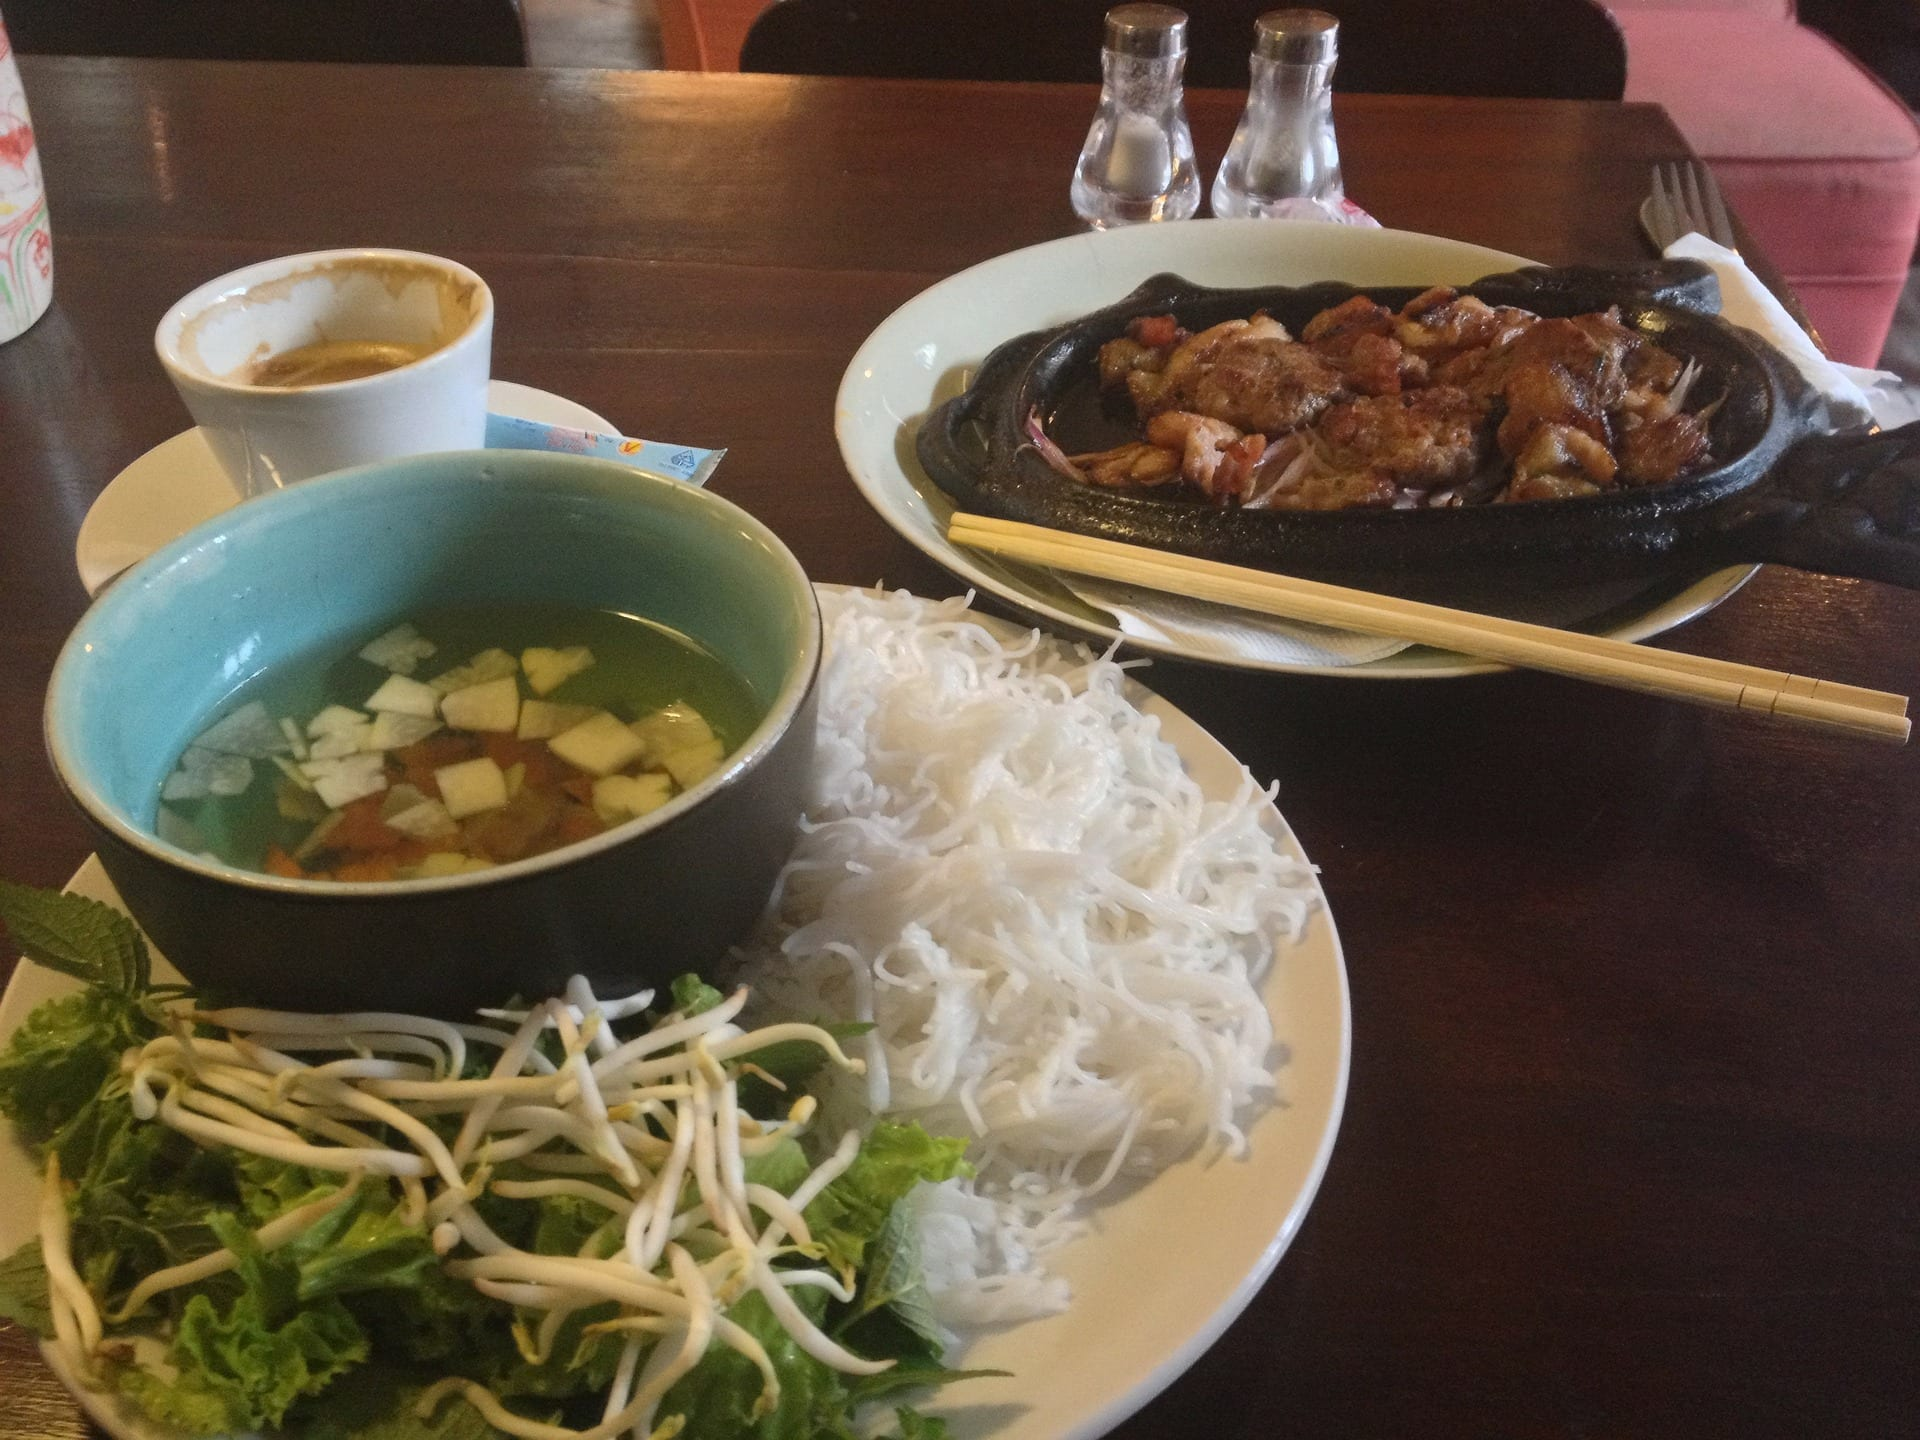 Trying the Vietnamese dishes when spending 2 days in Saigon